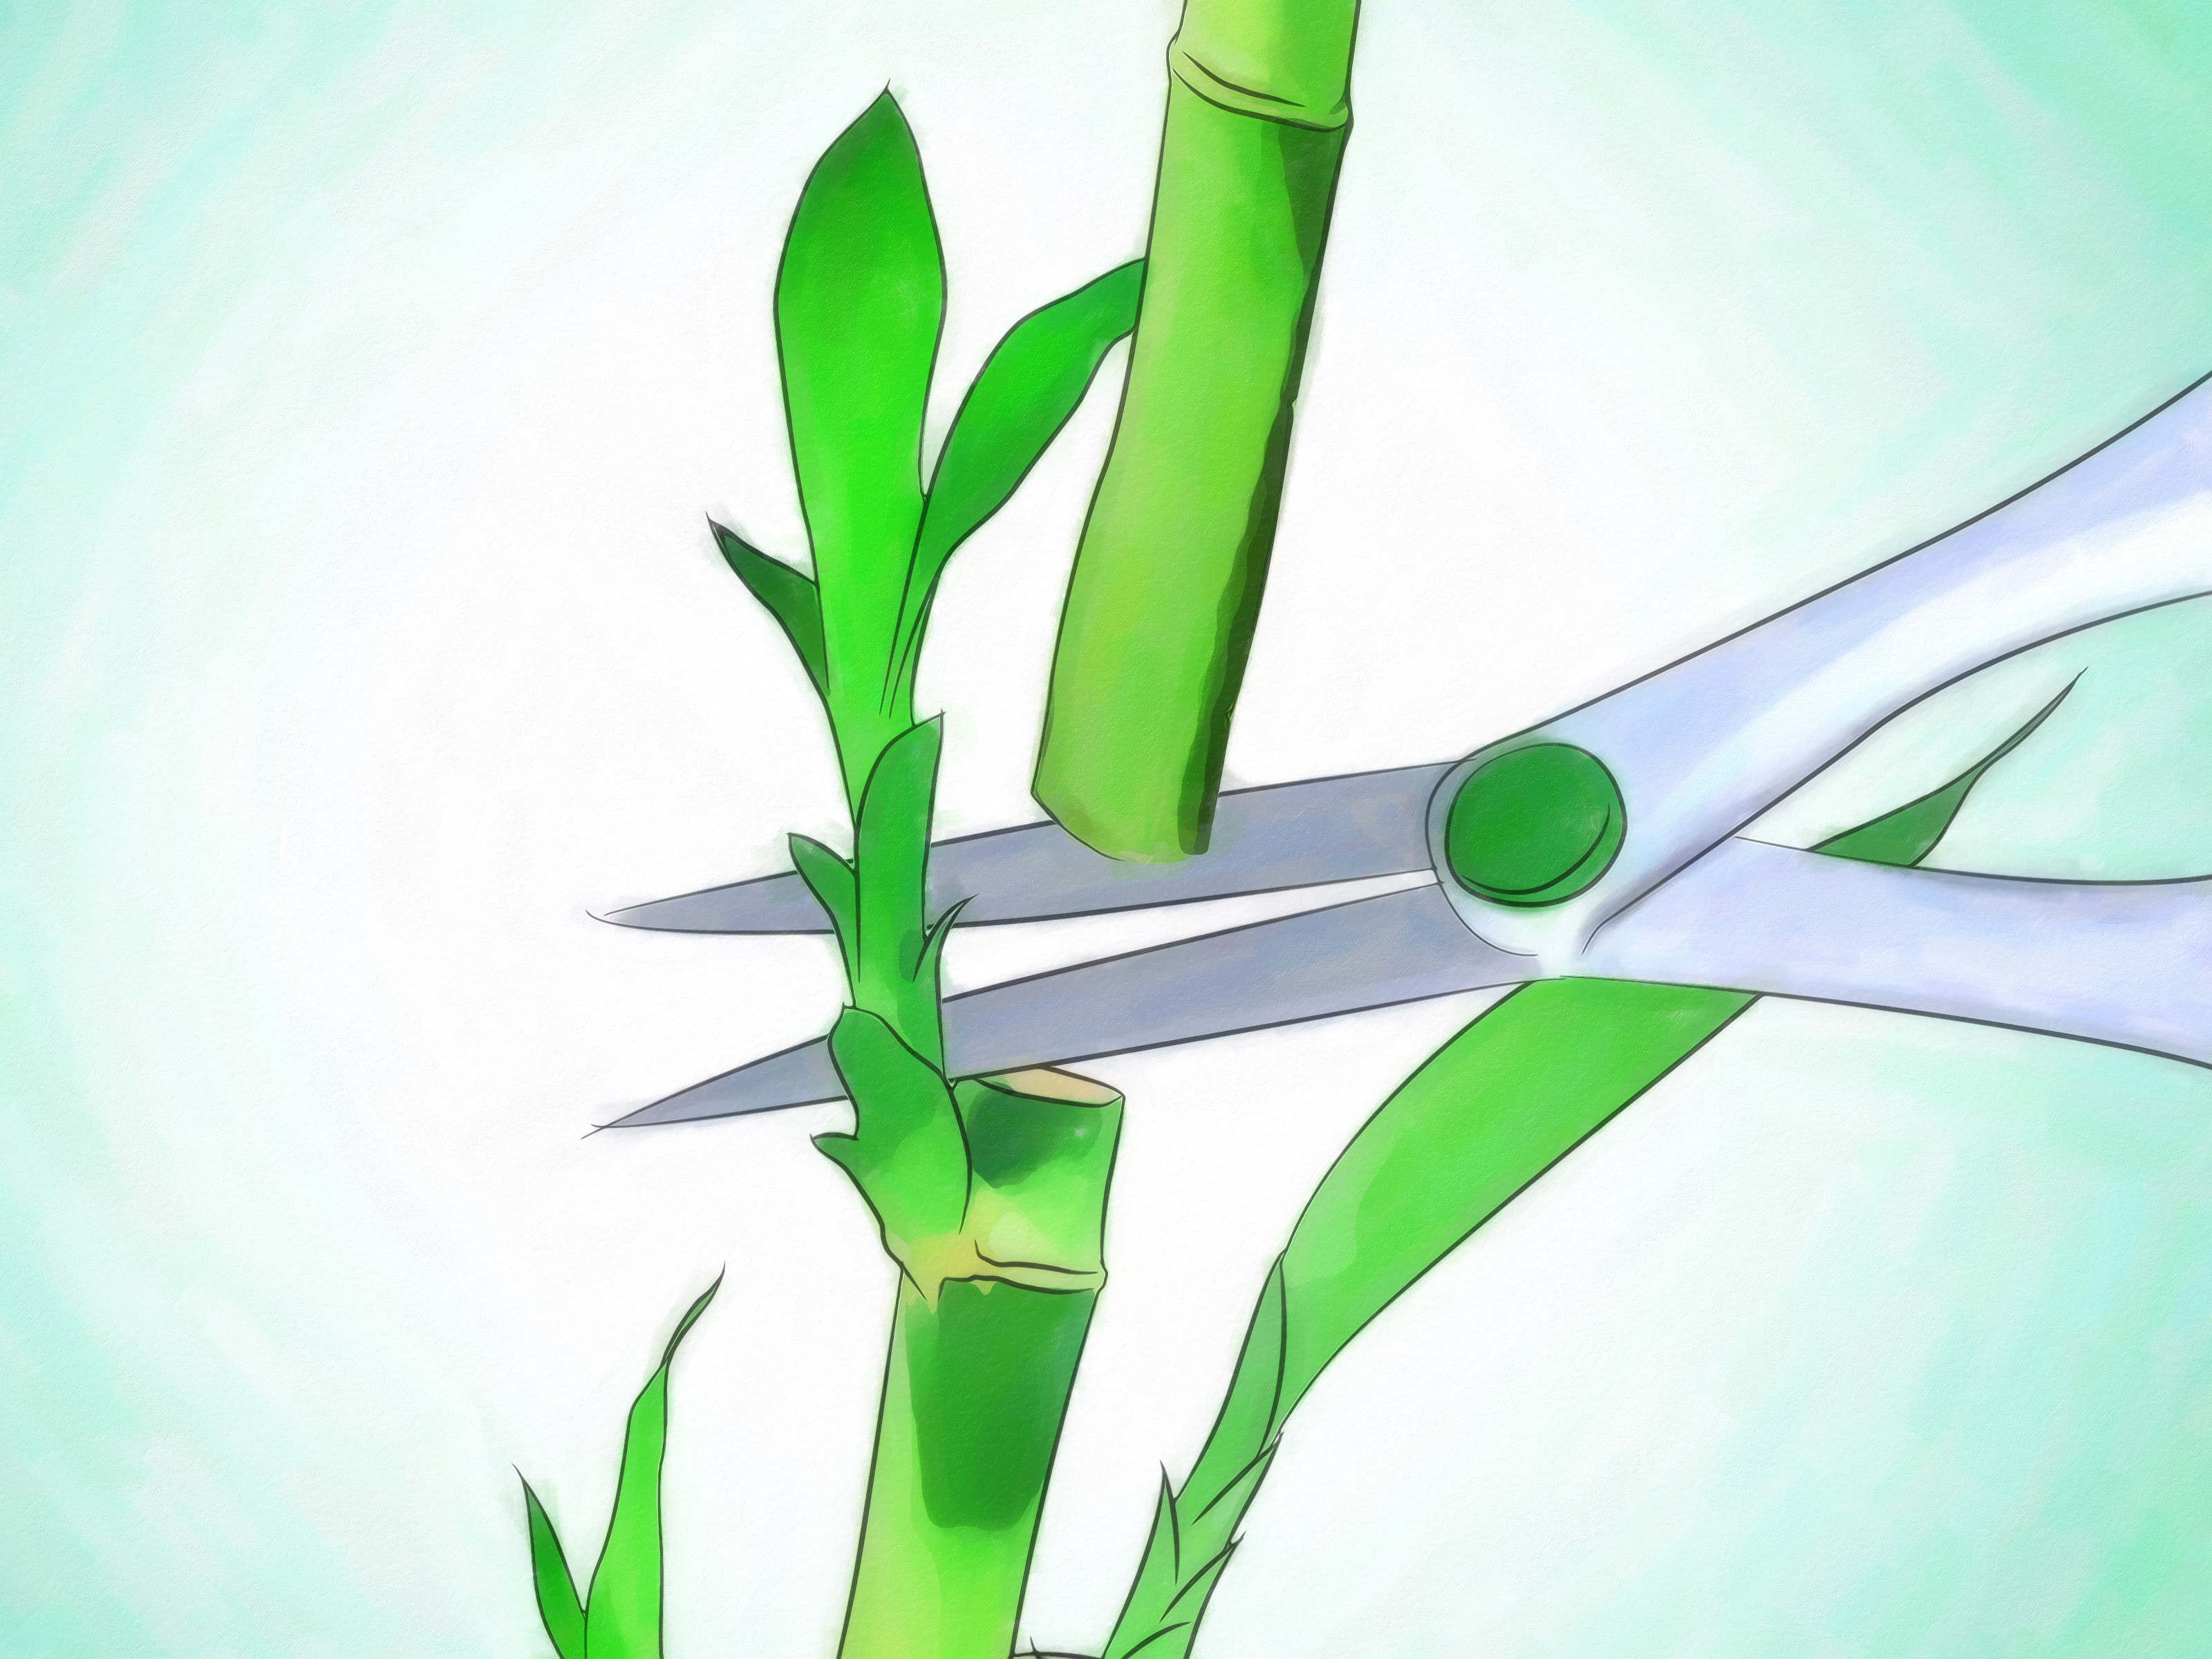 lucky bamboo vases pots of 3 ways to grow lucky bamboo wikihow in grow lucky bamboo step 12